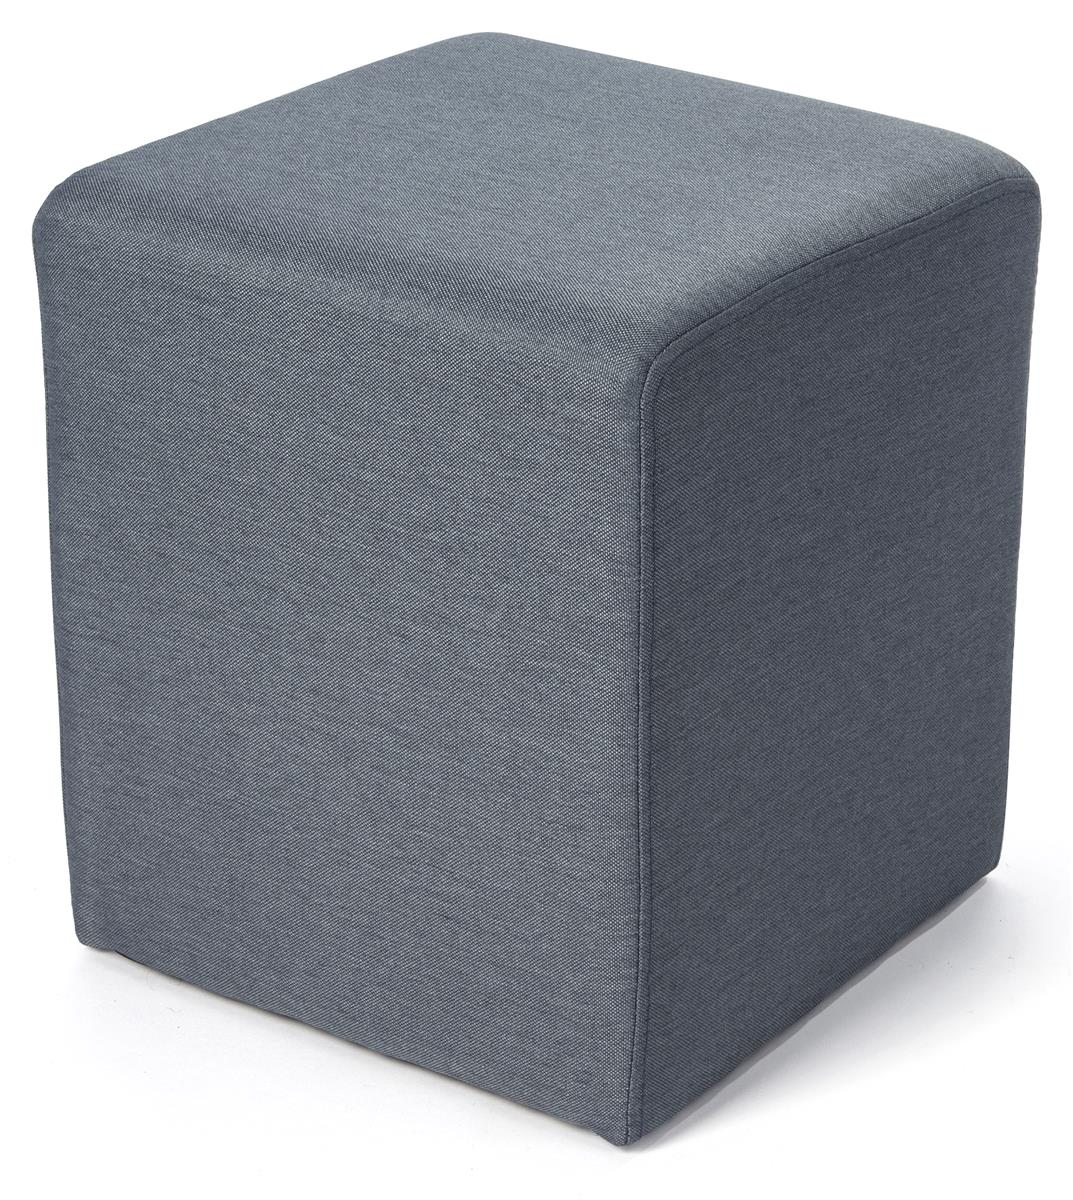 Square Ottoman Seating Cube Textured Blue Upholstery